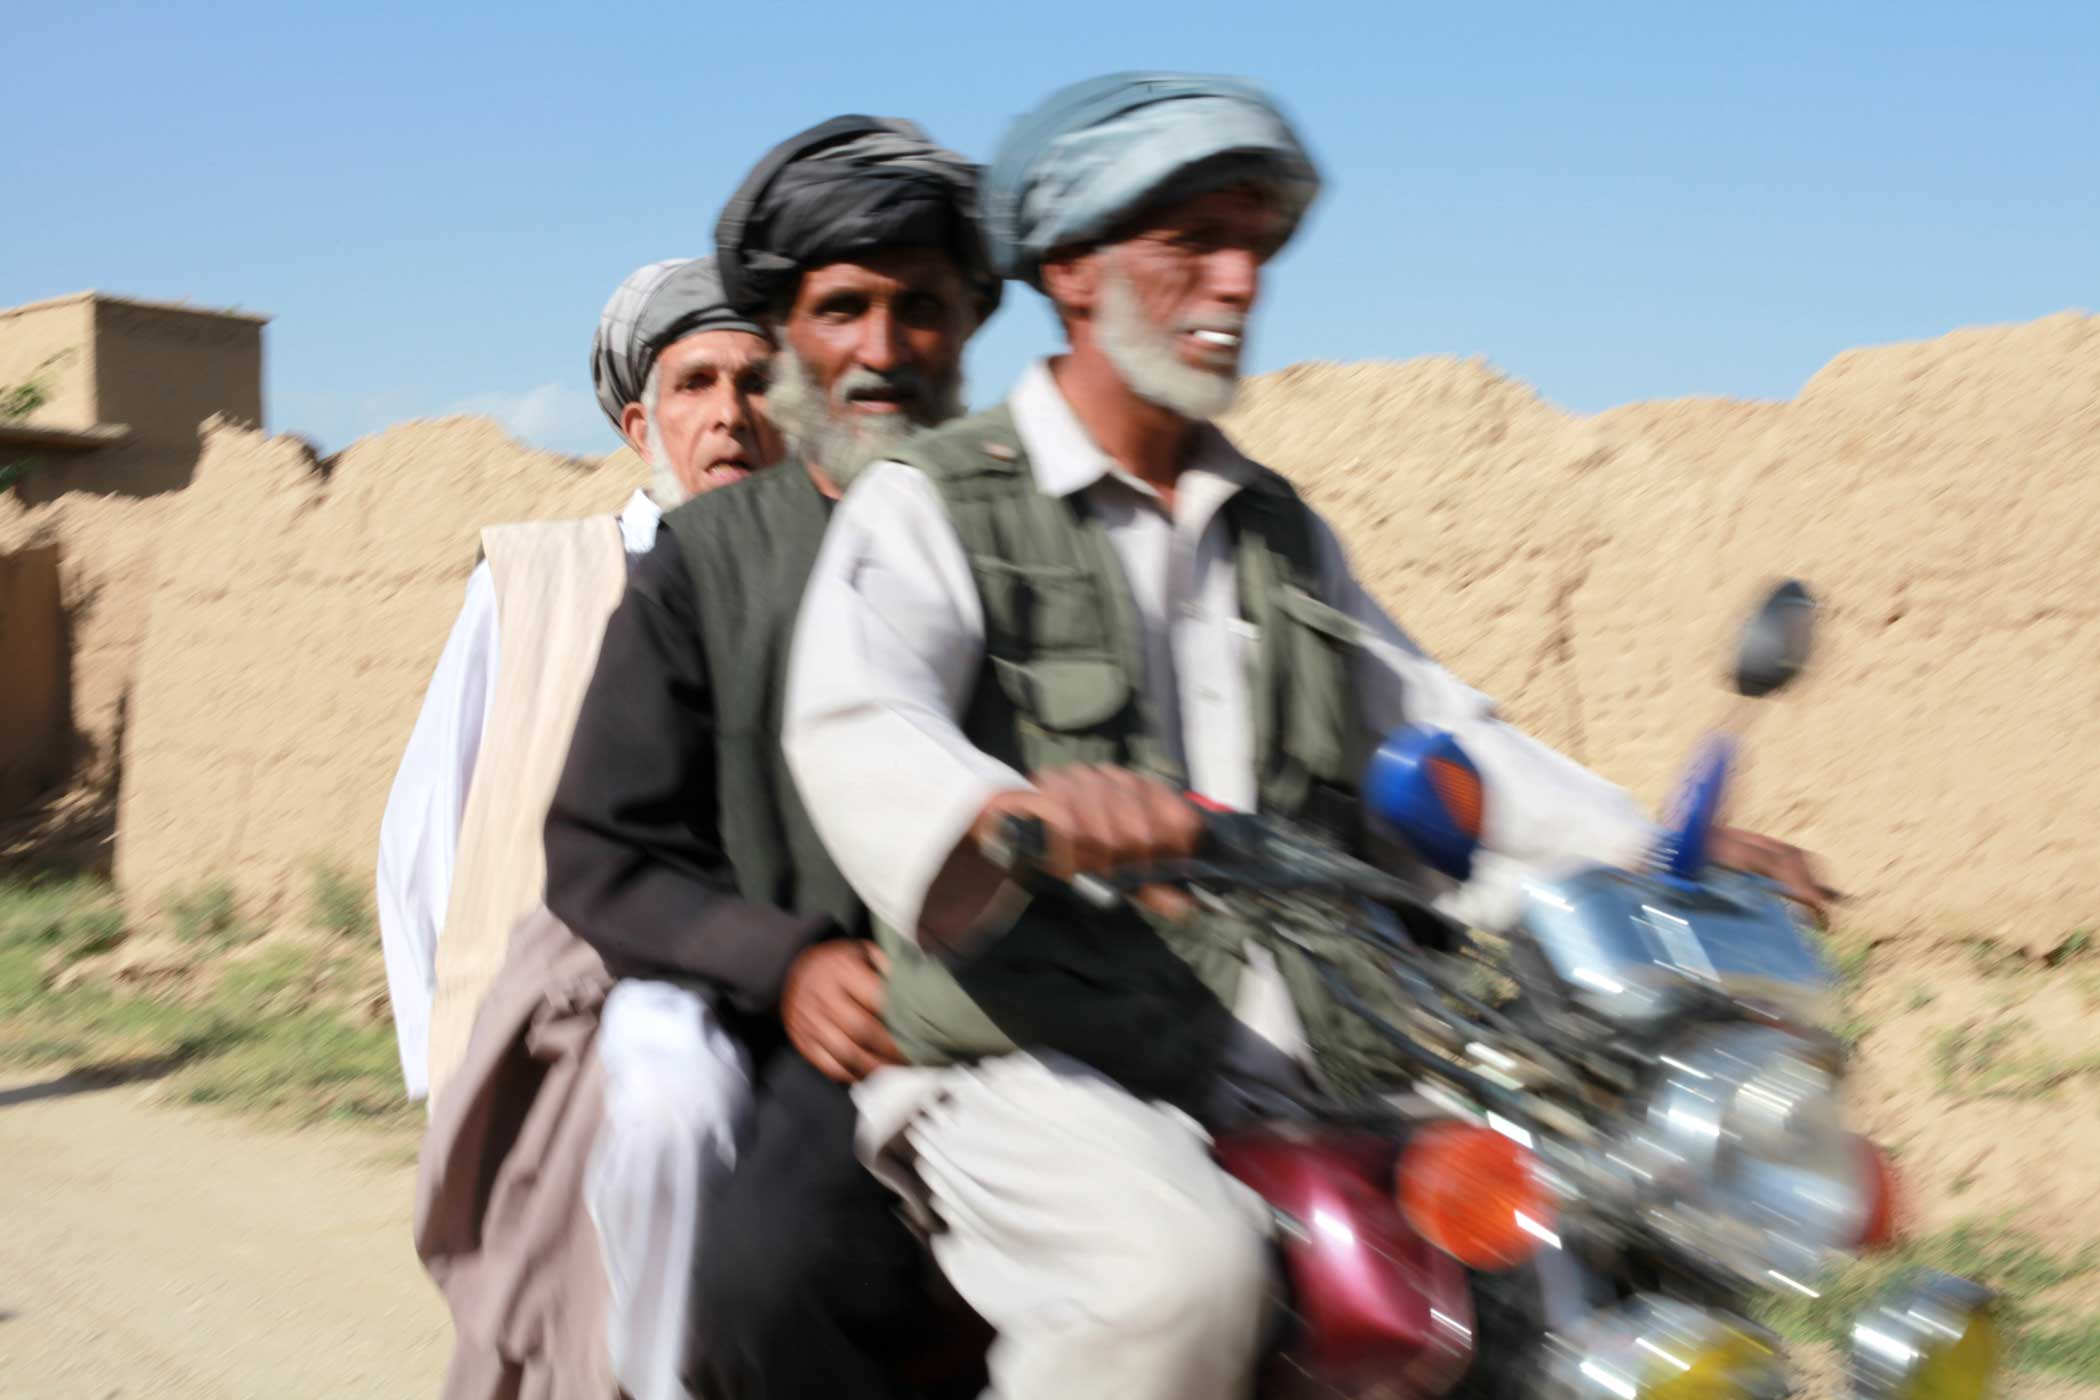 Three Afghan men share a motorcycle in Bagram, Afghanistan, in 2009. Photo by Staff Sgt. Teddy Wade, courtesy of U.S. Army.